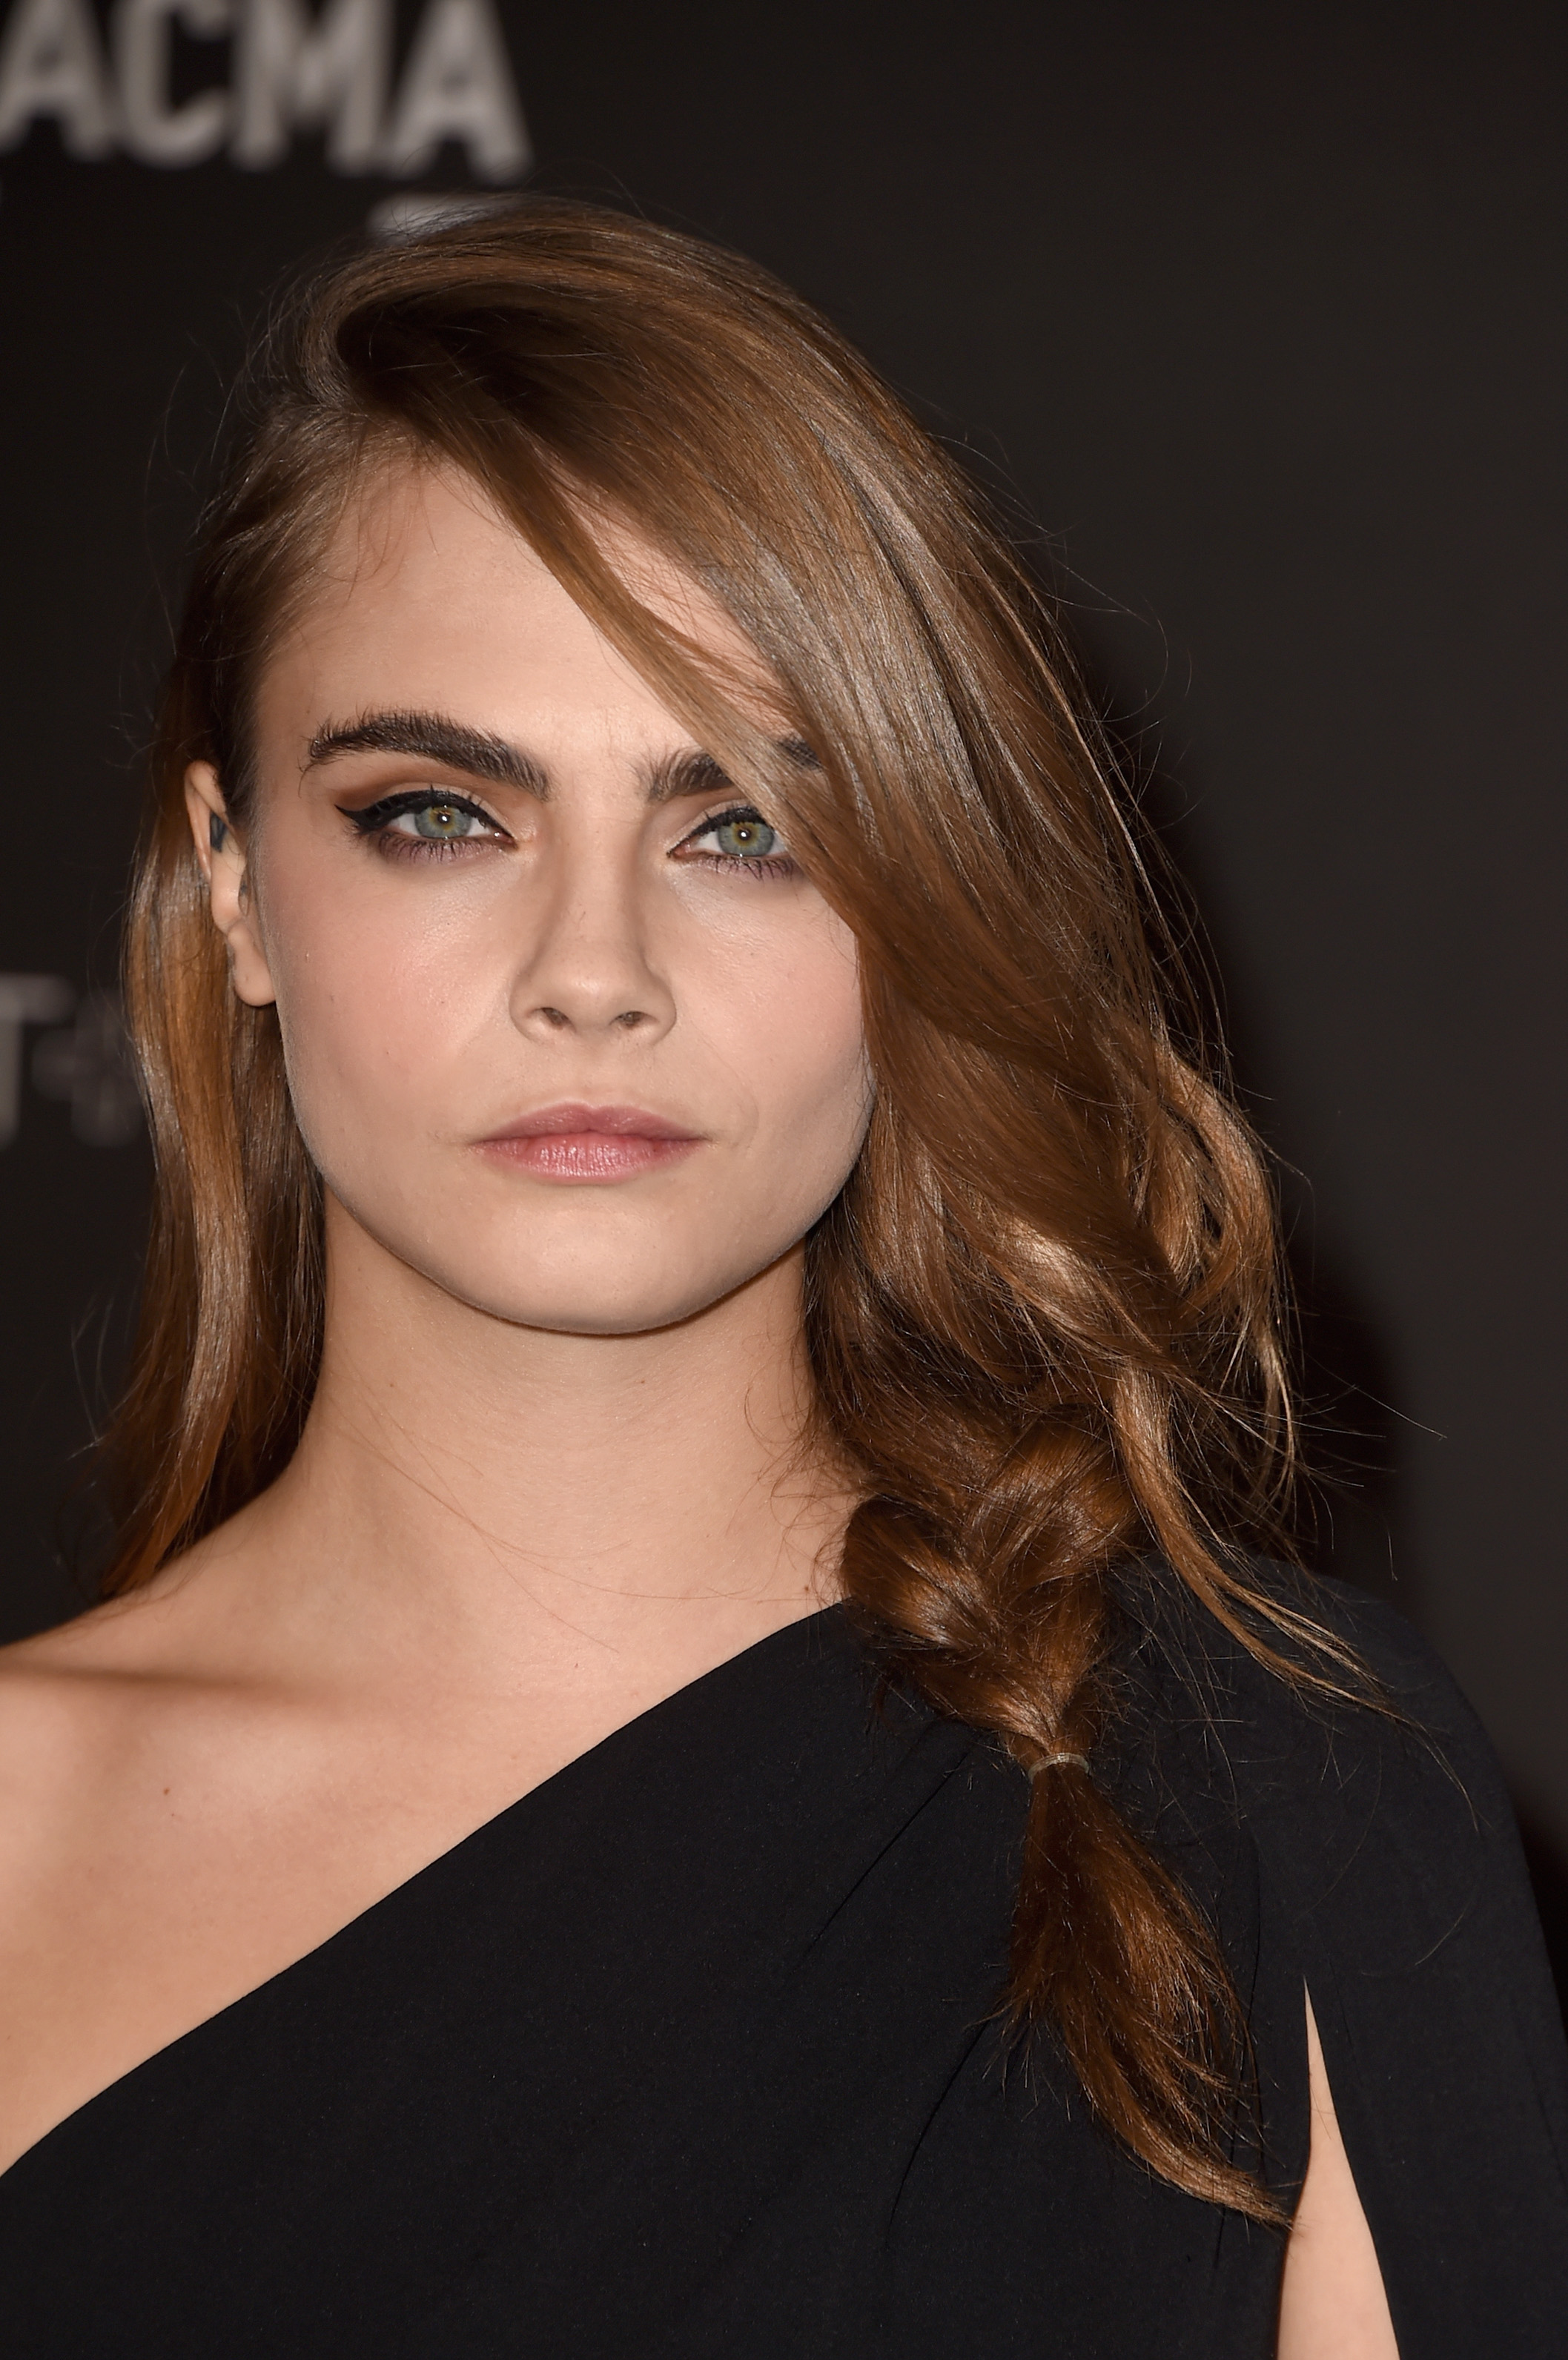 Cara Delevingne Dyes Her Hair Brown: See Pictures of the New Brunette | StyleCaster